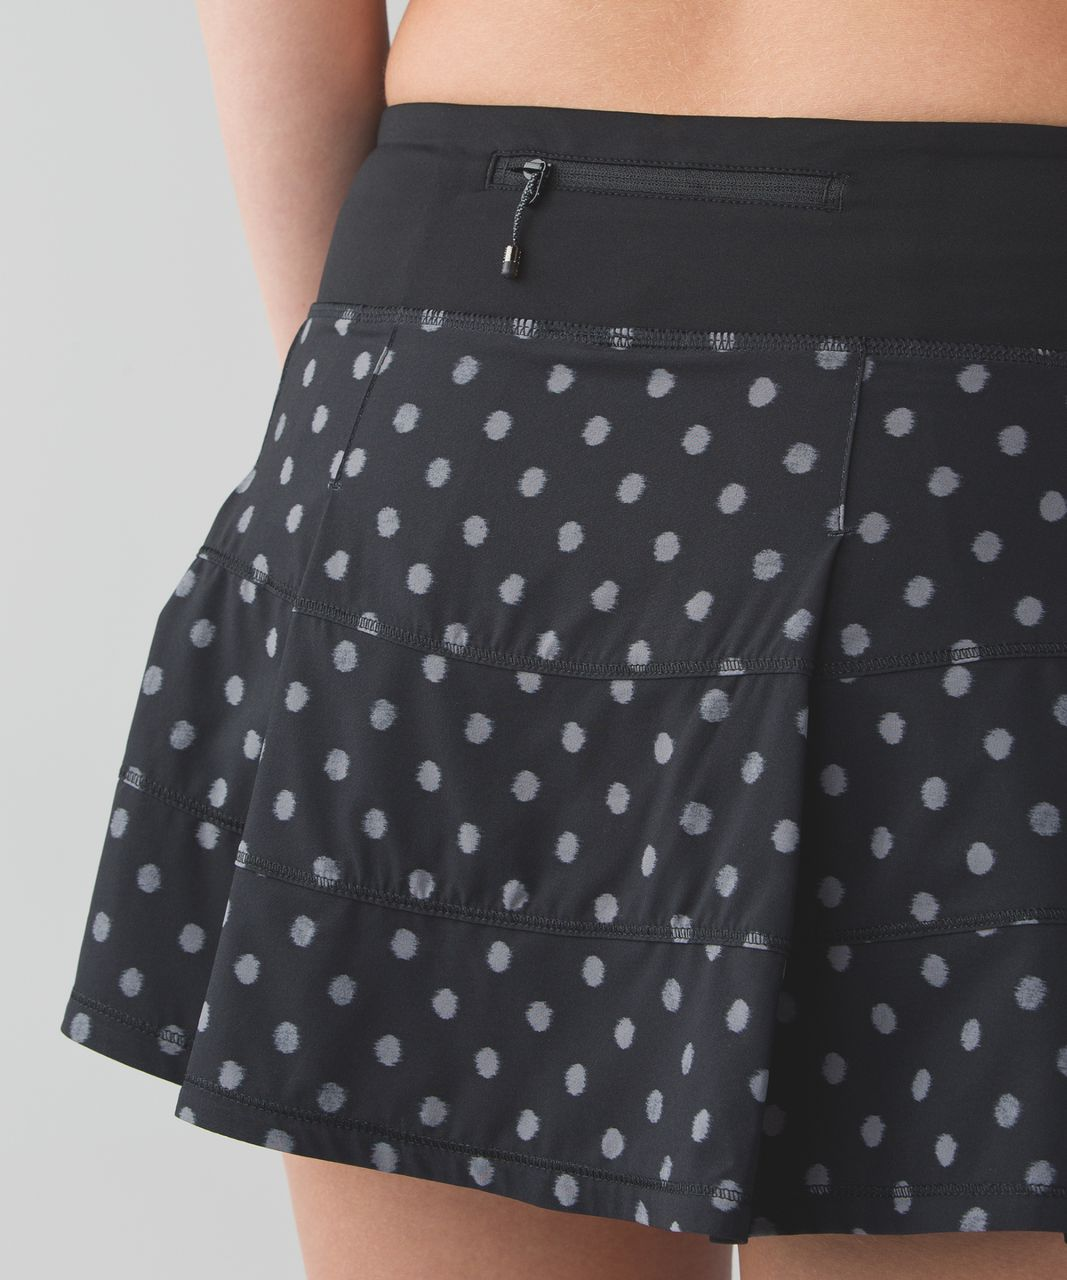 Lululemon Pace Rival Skirt II (Regular) *4-way Stretch - Ghost Dot Black Slate / Black